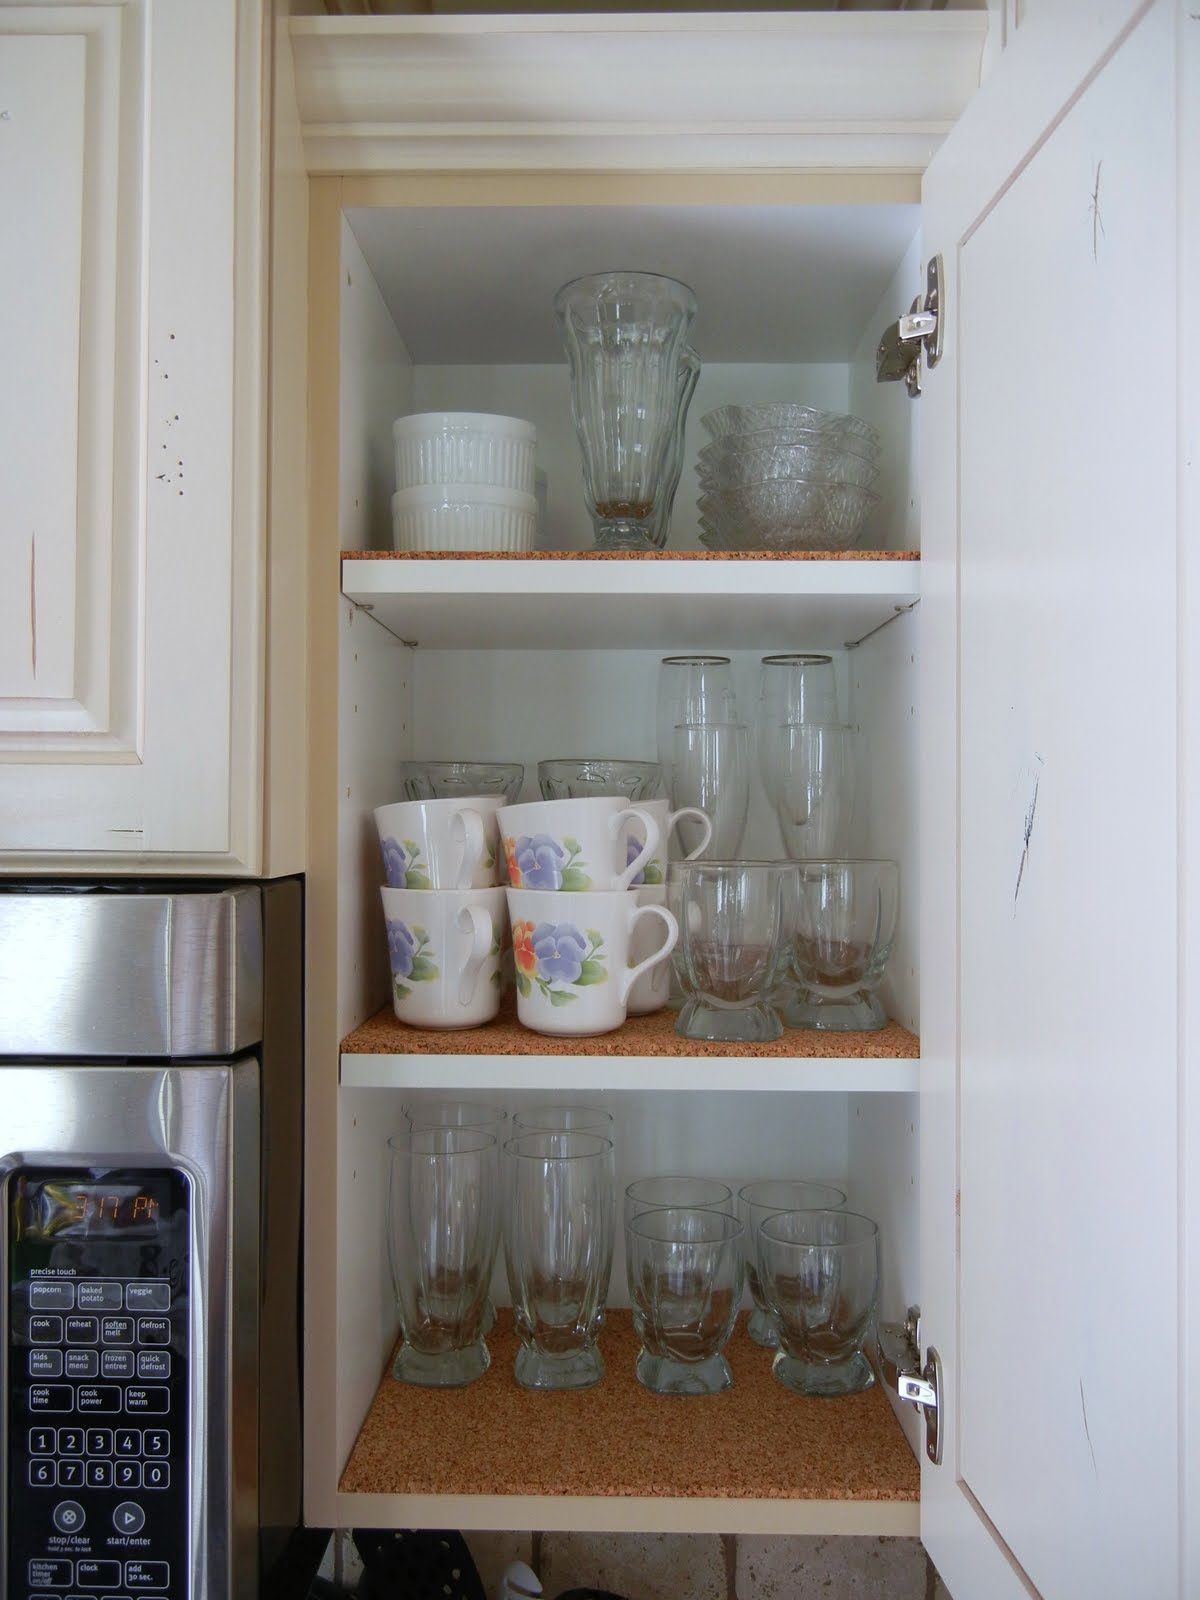 Kitchen Shelf Liners Diy Cabinet Life Is Beautiful With A Bow Try Cork As Toxin Free Liner